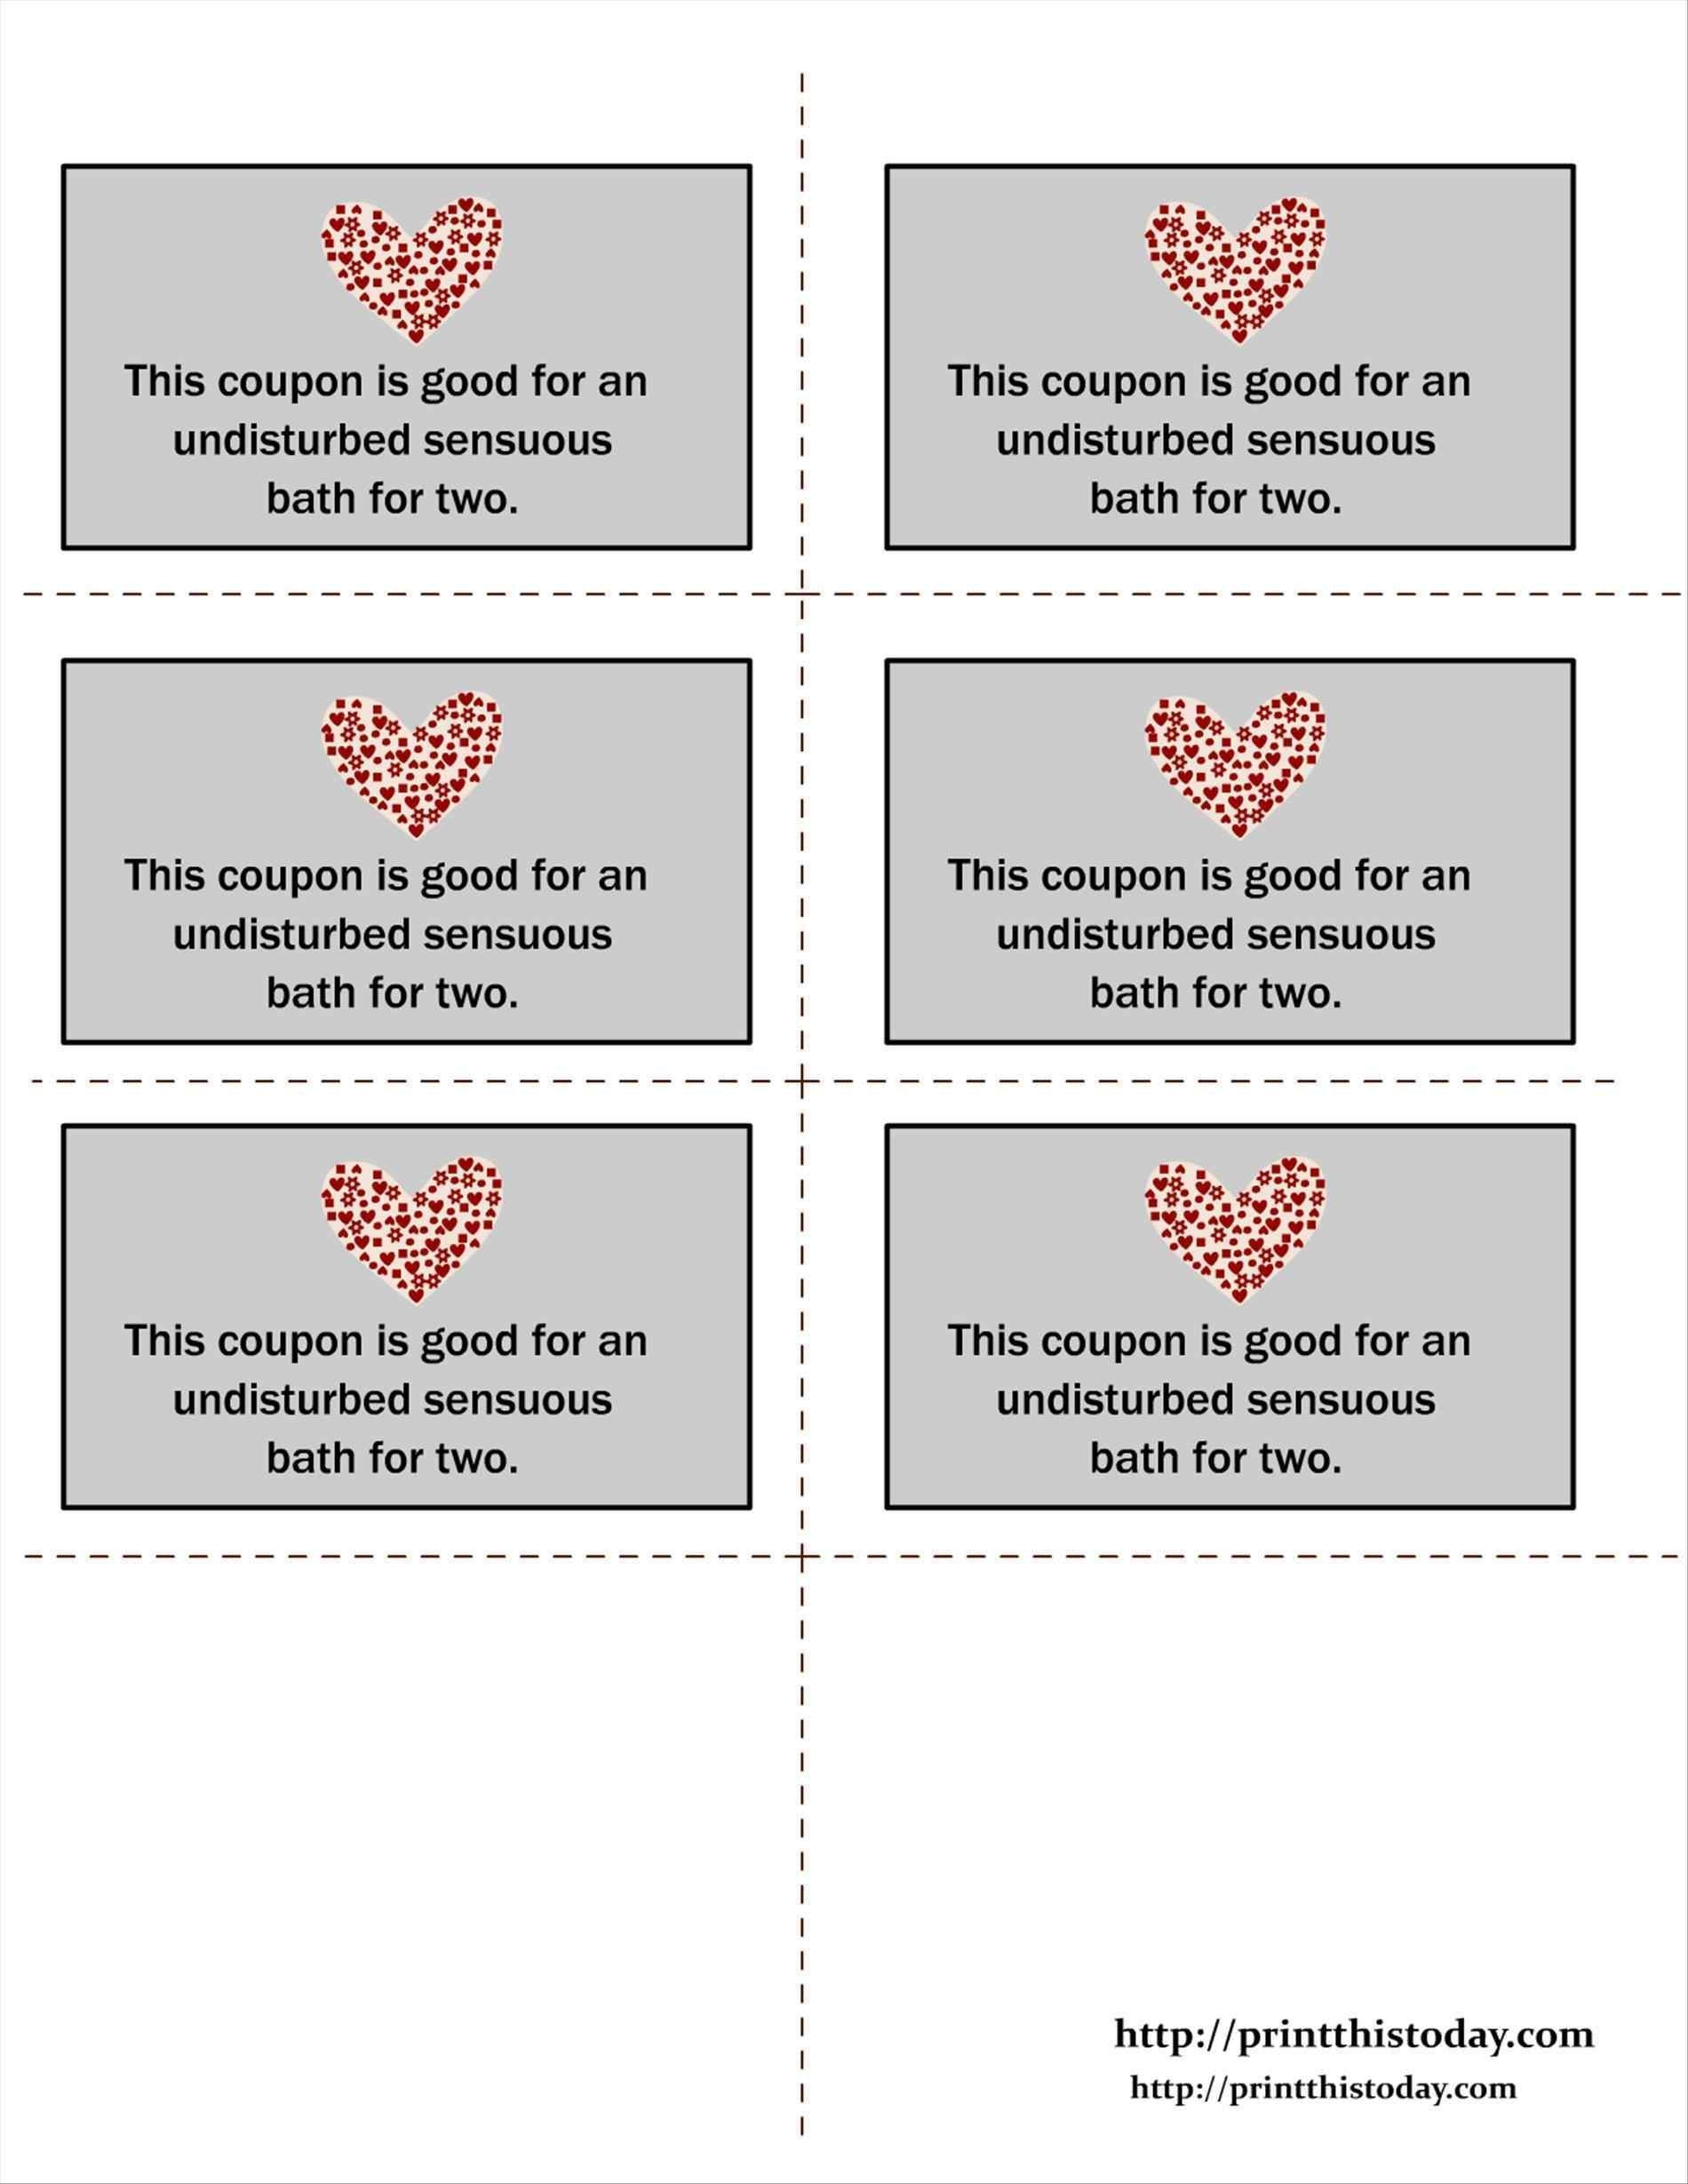 Blank Printable Love Coupons For Him | Chart And Printable World - Free Printable Love Coupons For Wife